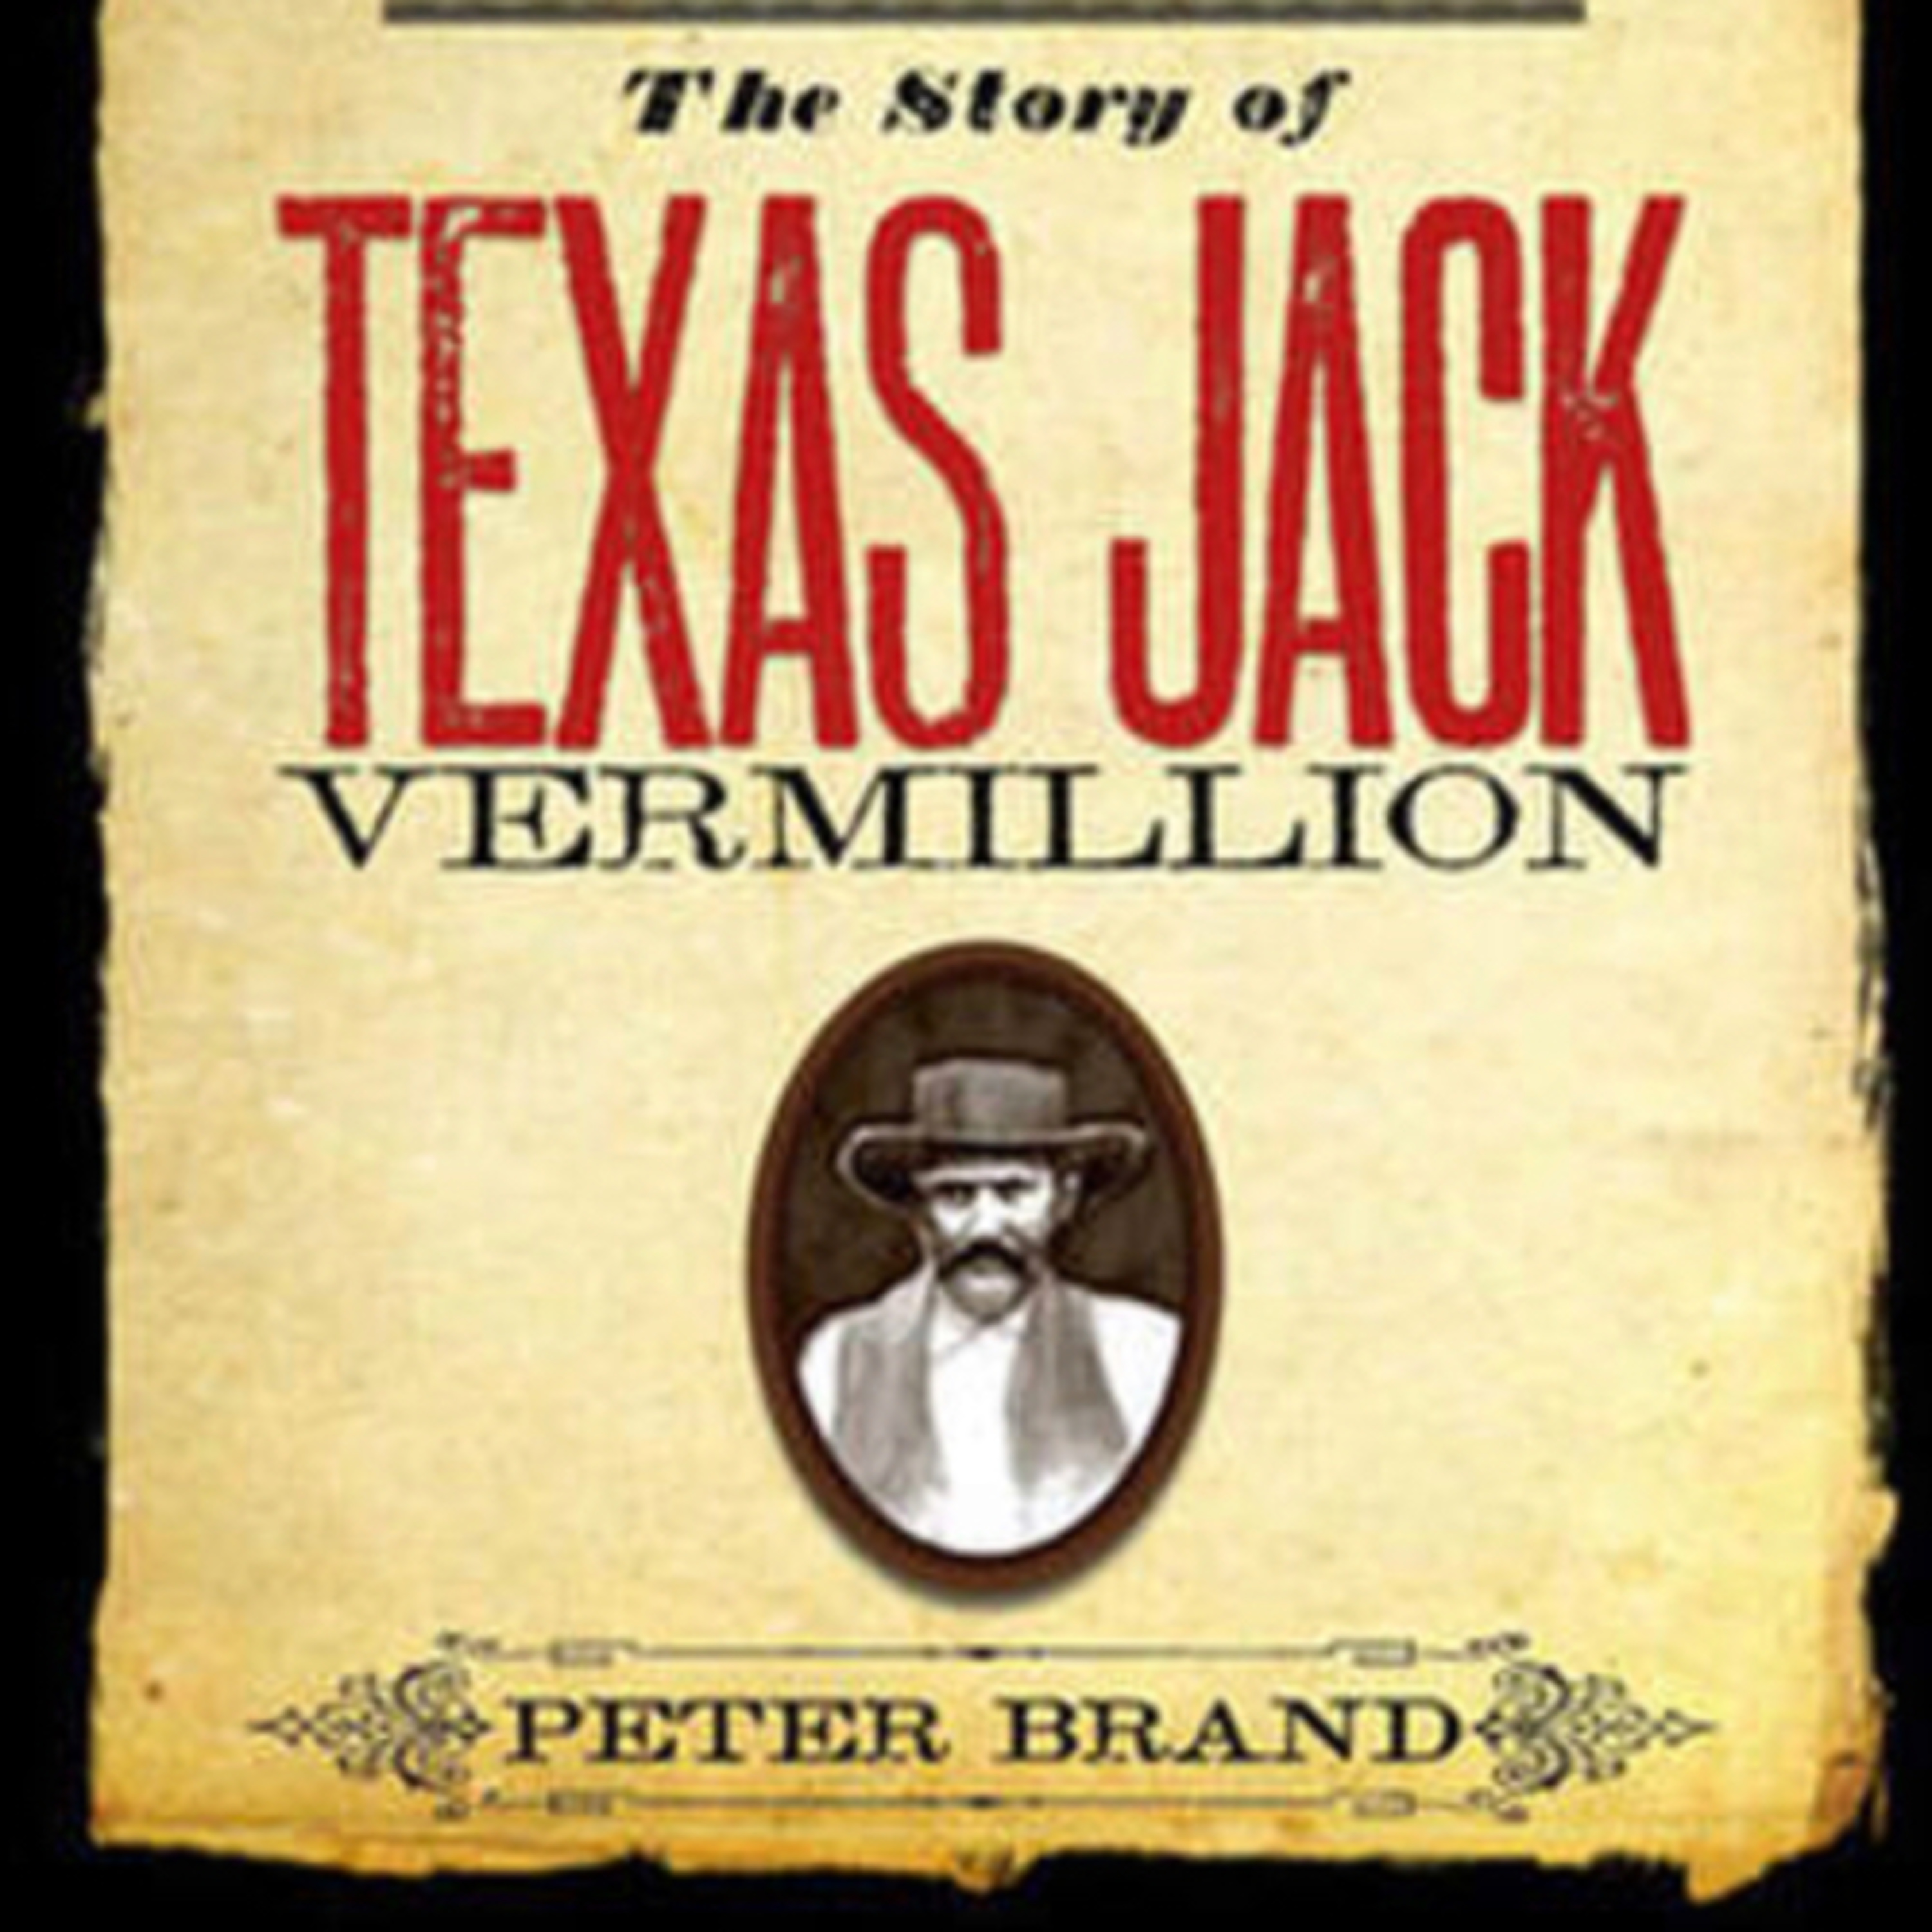 History Series Part 8 - This is Part 2 about the story of Texas Jack Vermillion.